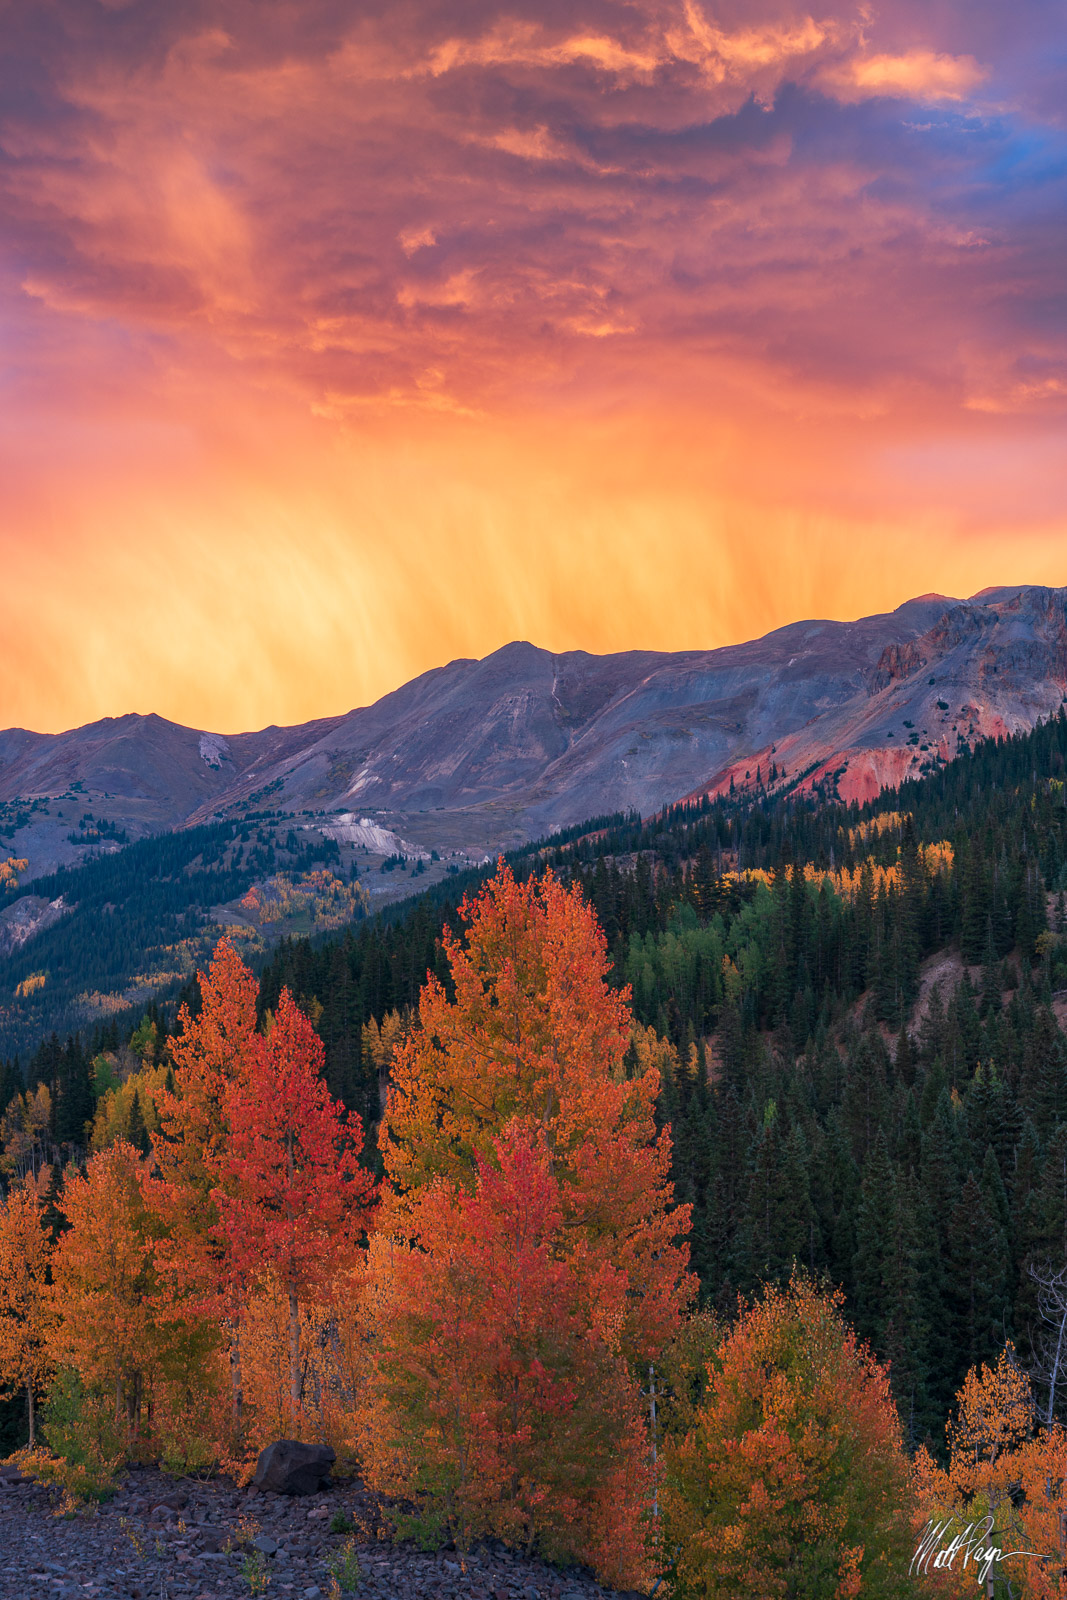 Aspen Trees, Autumn, Clouds, Colorado, Fall, Fall Colors, Landscape, Mountains, Red Mountain Pass, San Juan Mountains, storm, photo